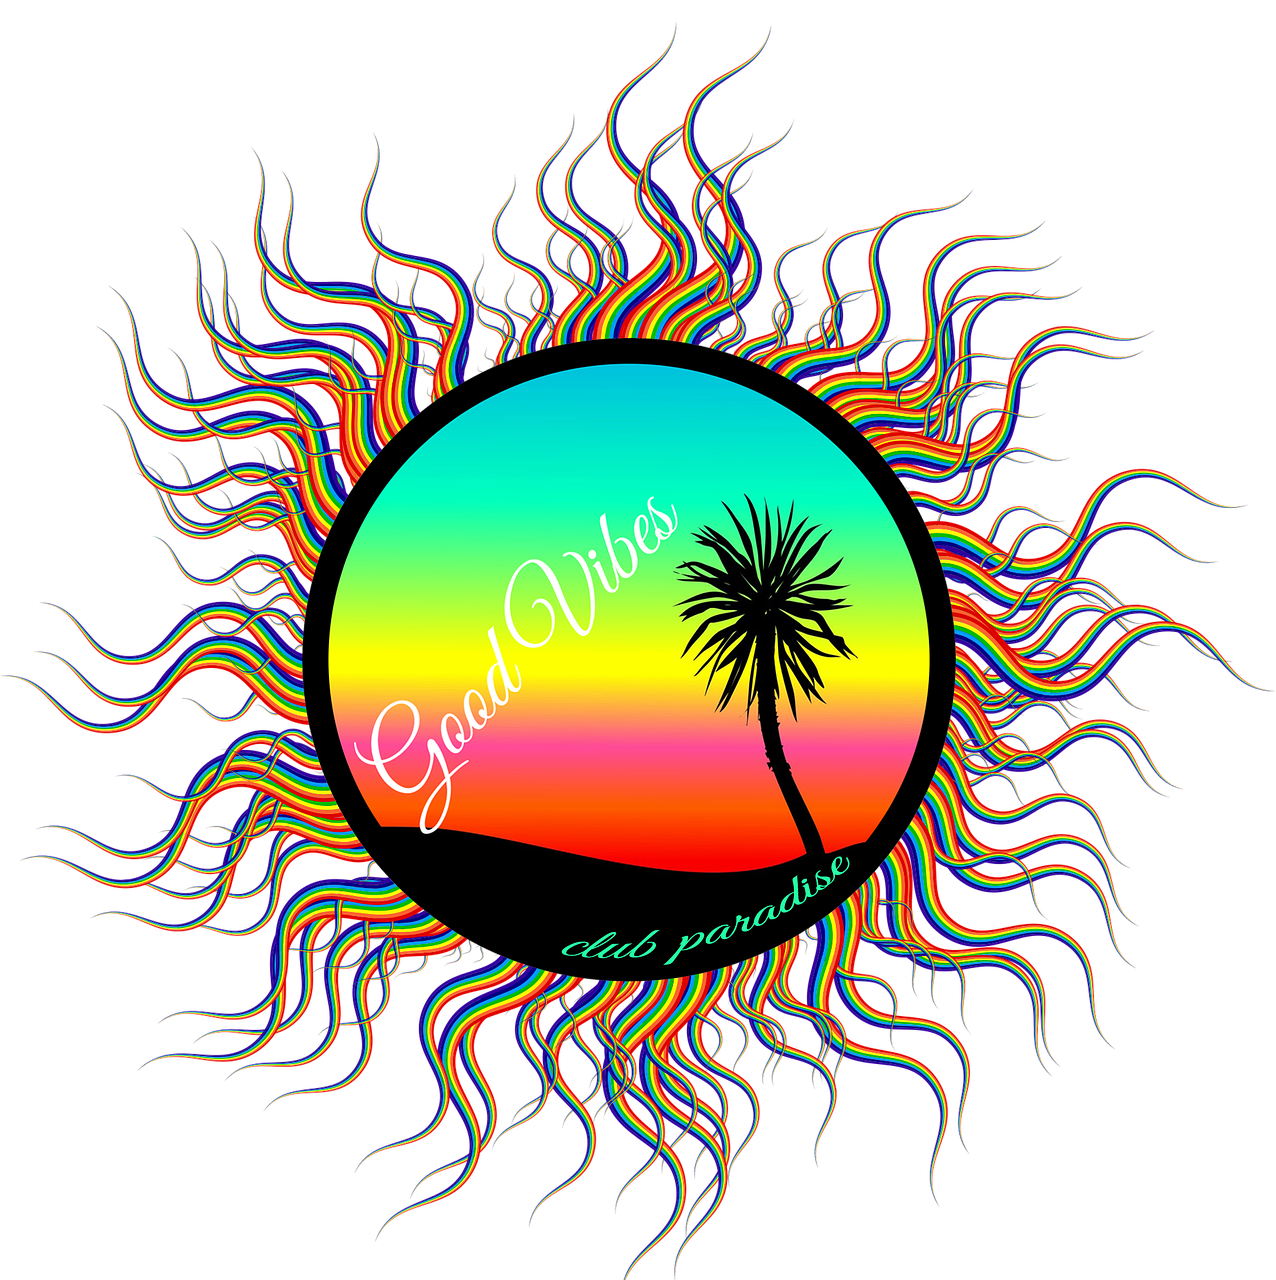 Sunset clipart beach wave. Palm tree drawing at